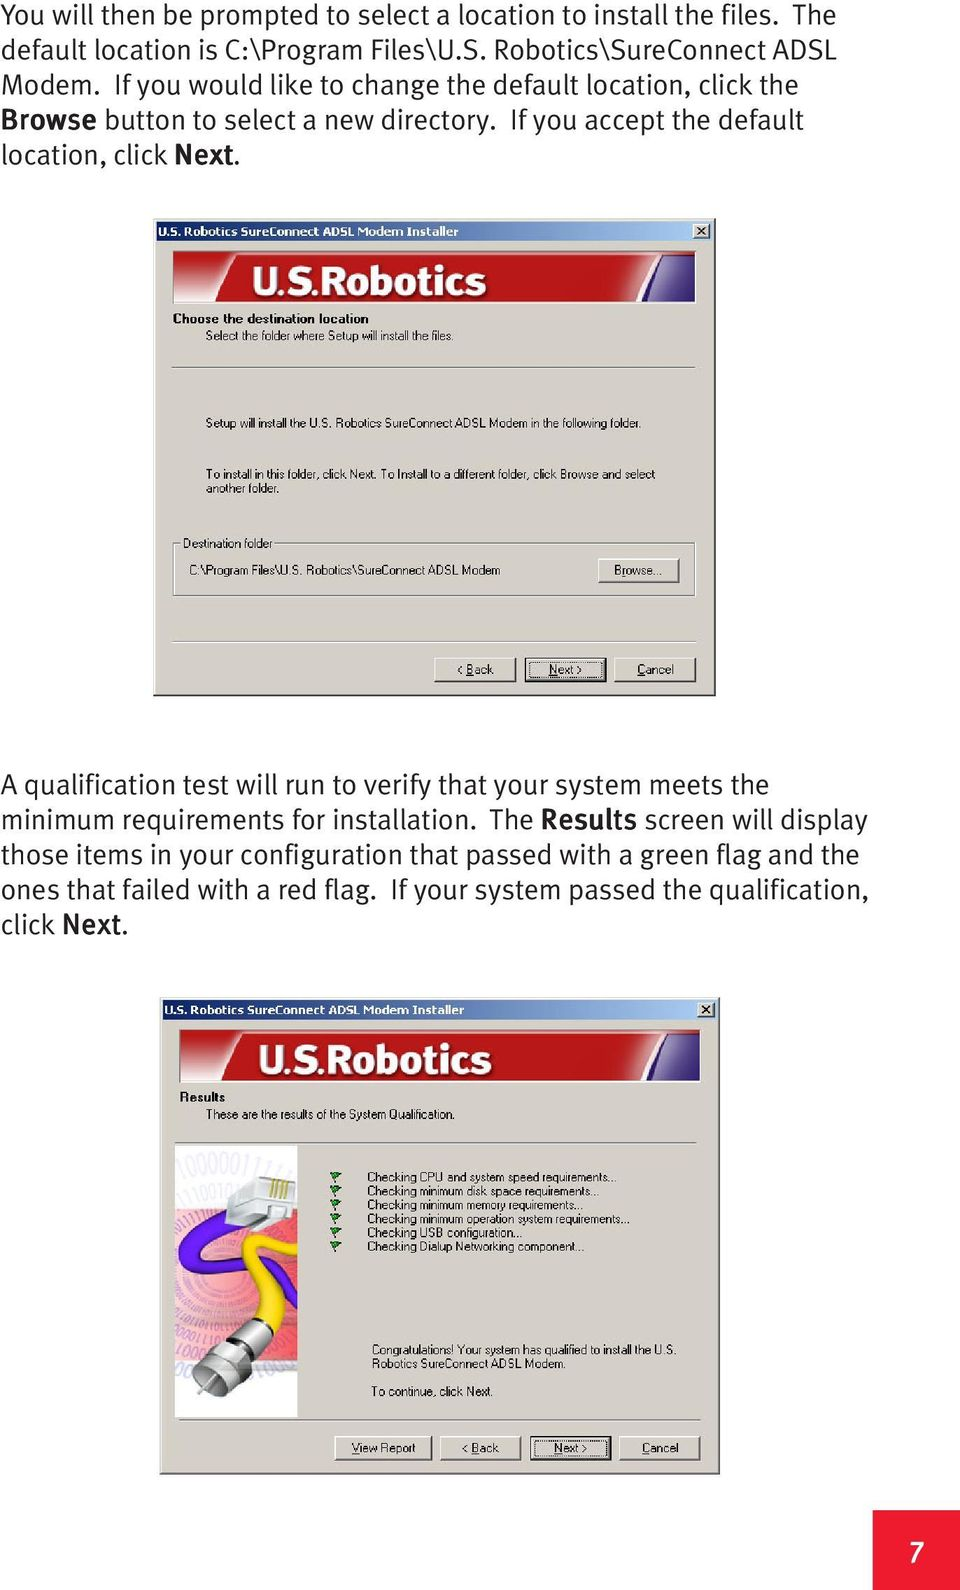 A qualification test will run to verify that your system meets the minimum requirements for installation.